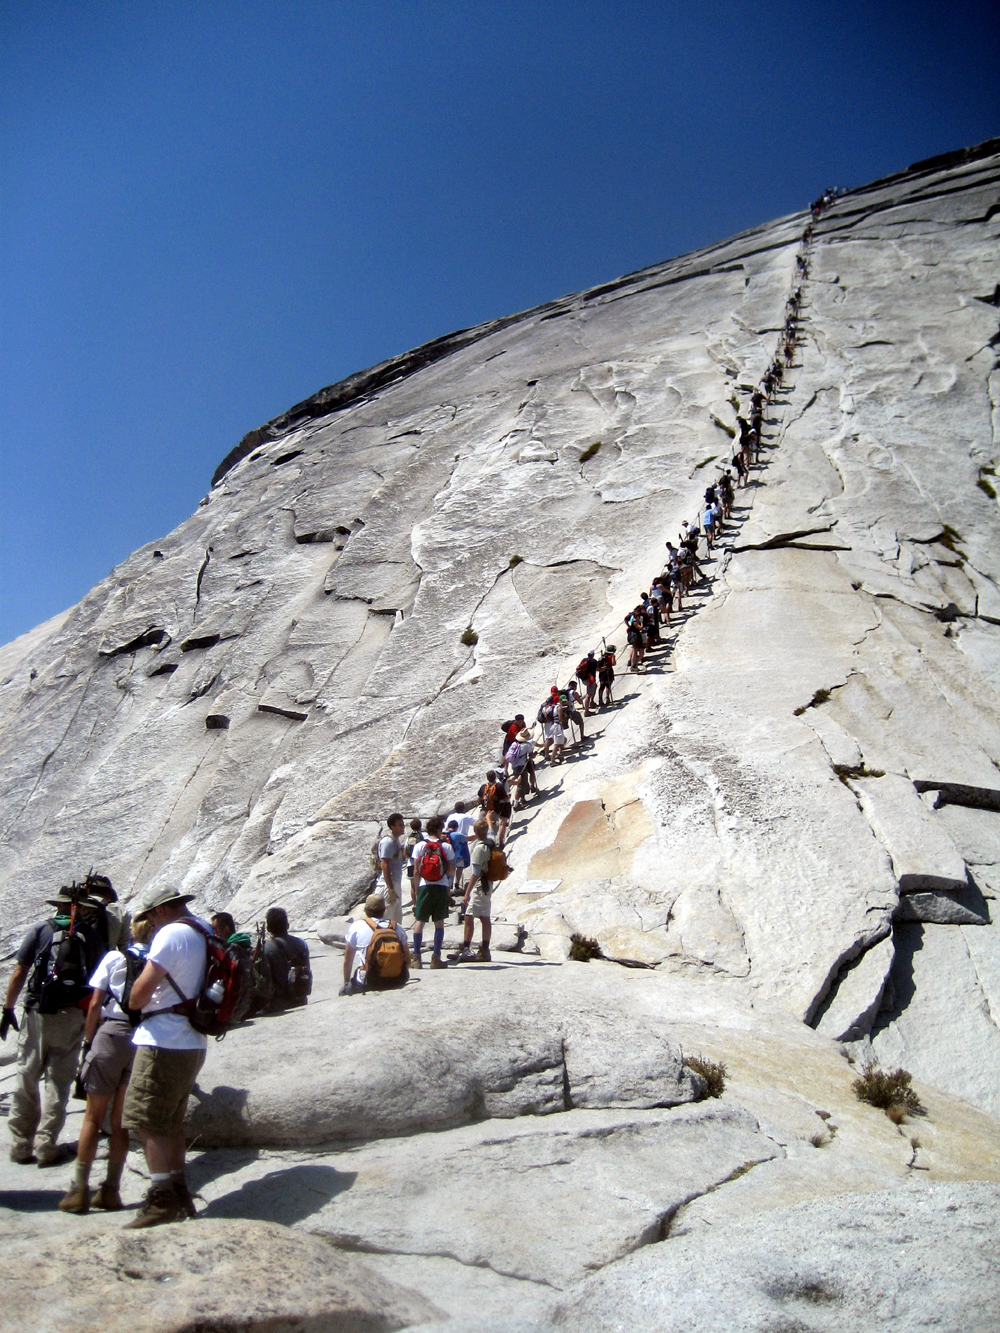 Half Dome - Wikipedia Yosemite Half Dome Trail Map on yosemite valley trail map, yosemite california road map, el capitan trail map, yosemite panorama trail map, mist trail yosemite map, hotels near yosemite national park map, little yosemite valley map, camp 4 yosemite map, yosemite four mile trail map, john muir trail map, yosemite valley floor map, yosemite hiking map, yosemite ten lakes trail map, yosemite elevation map, yosemite backpacking trail maps, yosemite west map, yosemite falls map, yosemite tuolumne meadows trail map, yosemite topo map, yosemite park trail map,